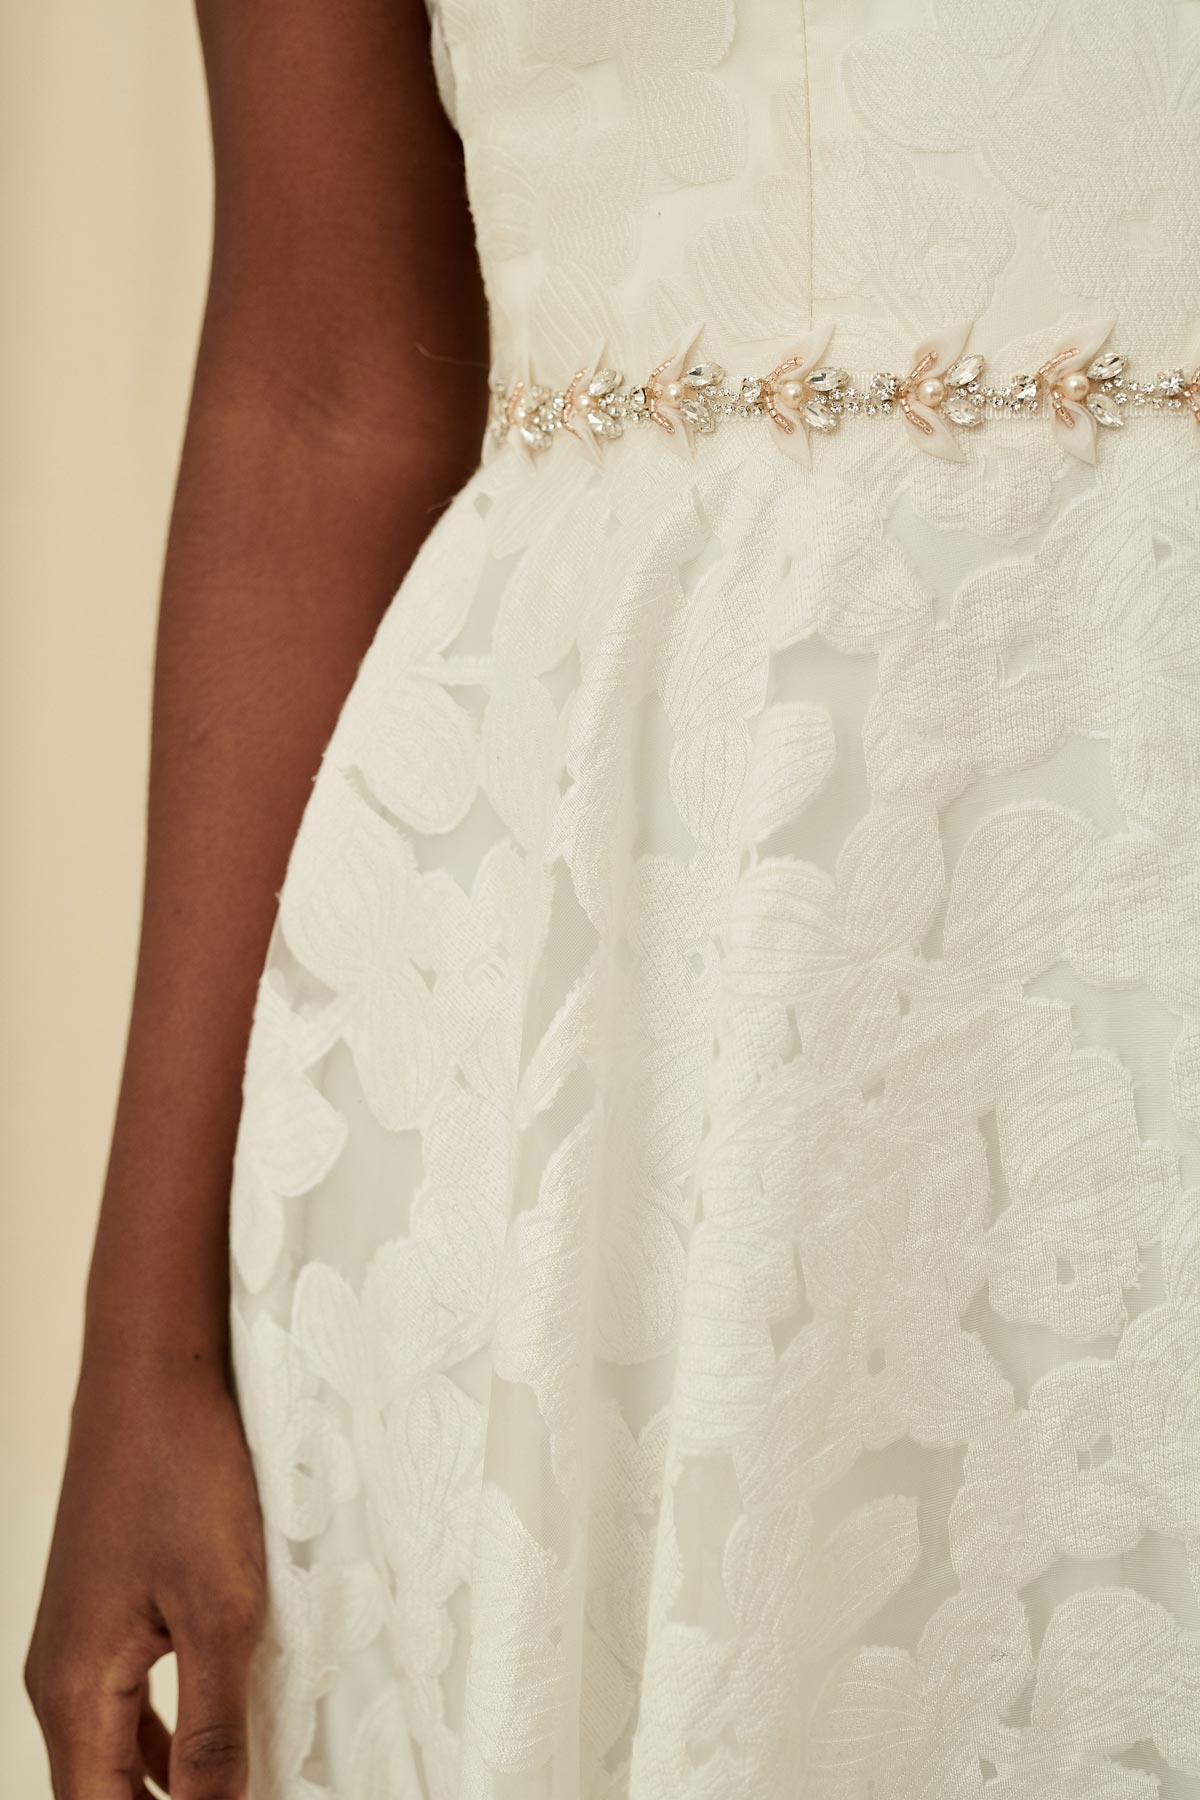 A delicate and feminine bridal belt made with crystals, pearls, glass beads, and soft fabric flower petals